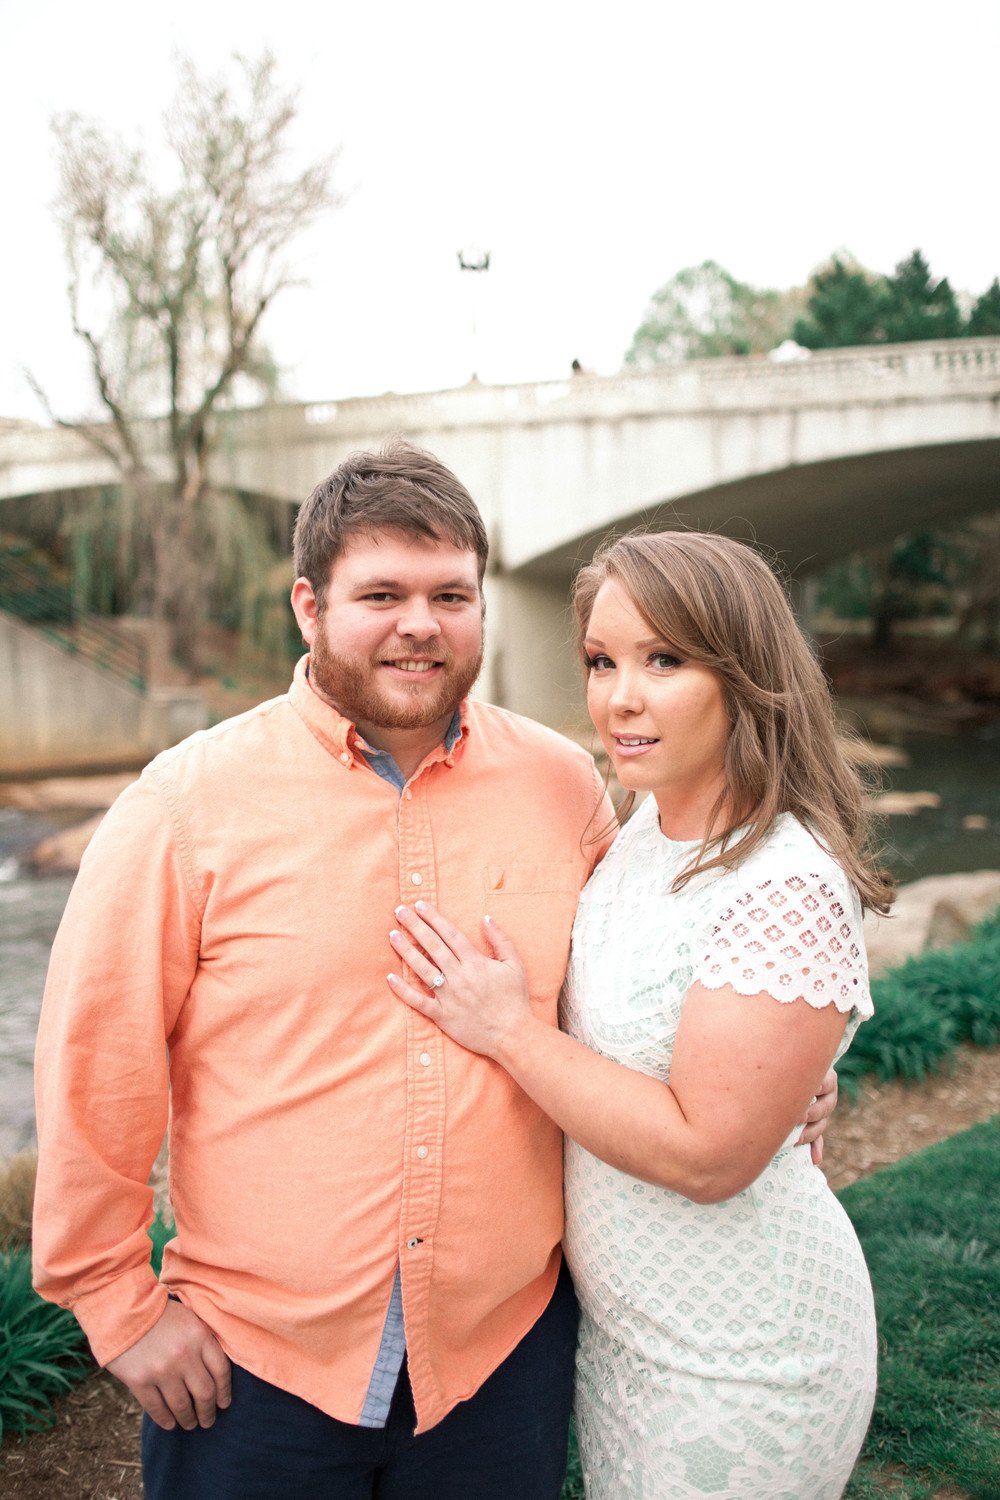 zach_gabbie_engagement_poured_out_photography-10.jpg